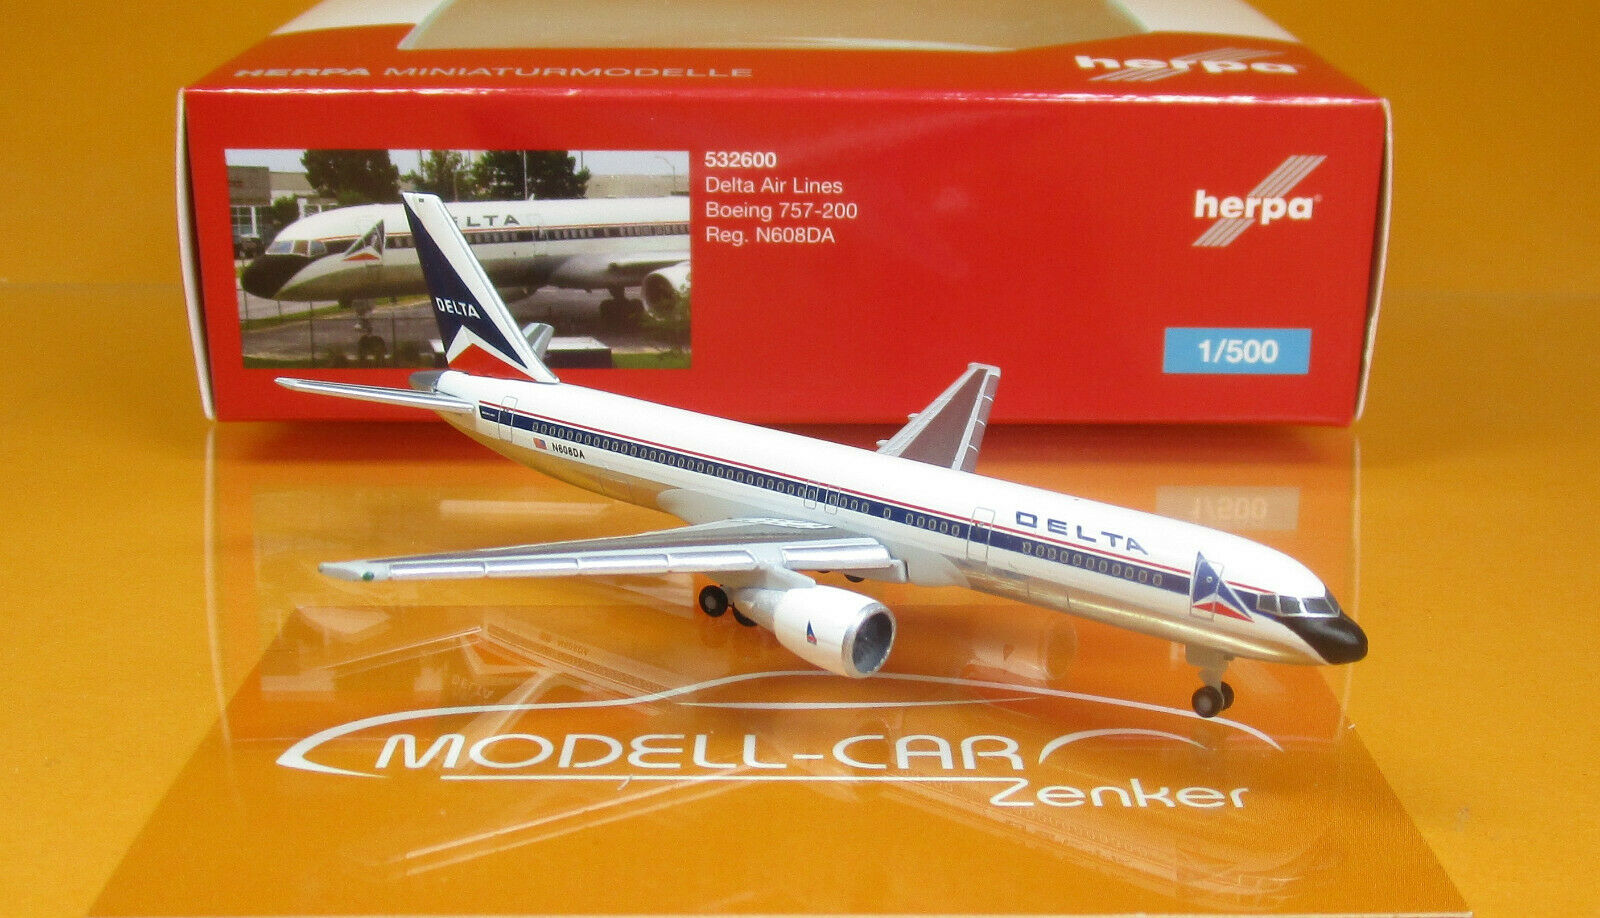 Herpa Wings 532600 Delta Air Lines Boeing 757-200 Scale Scale Scale 1 500 a2712e